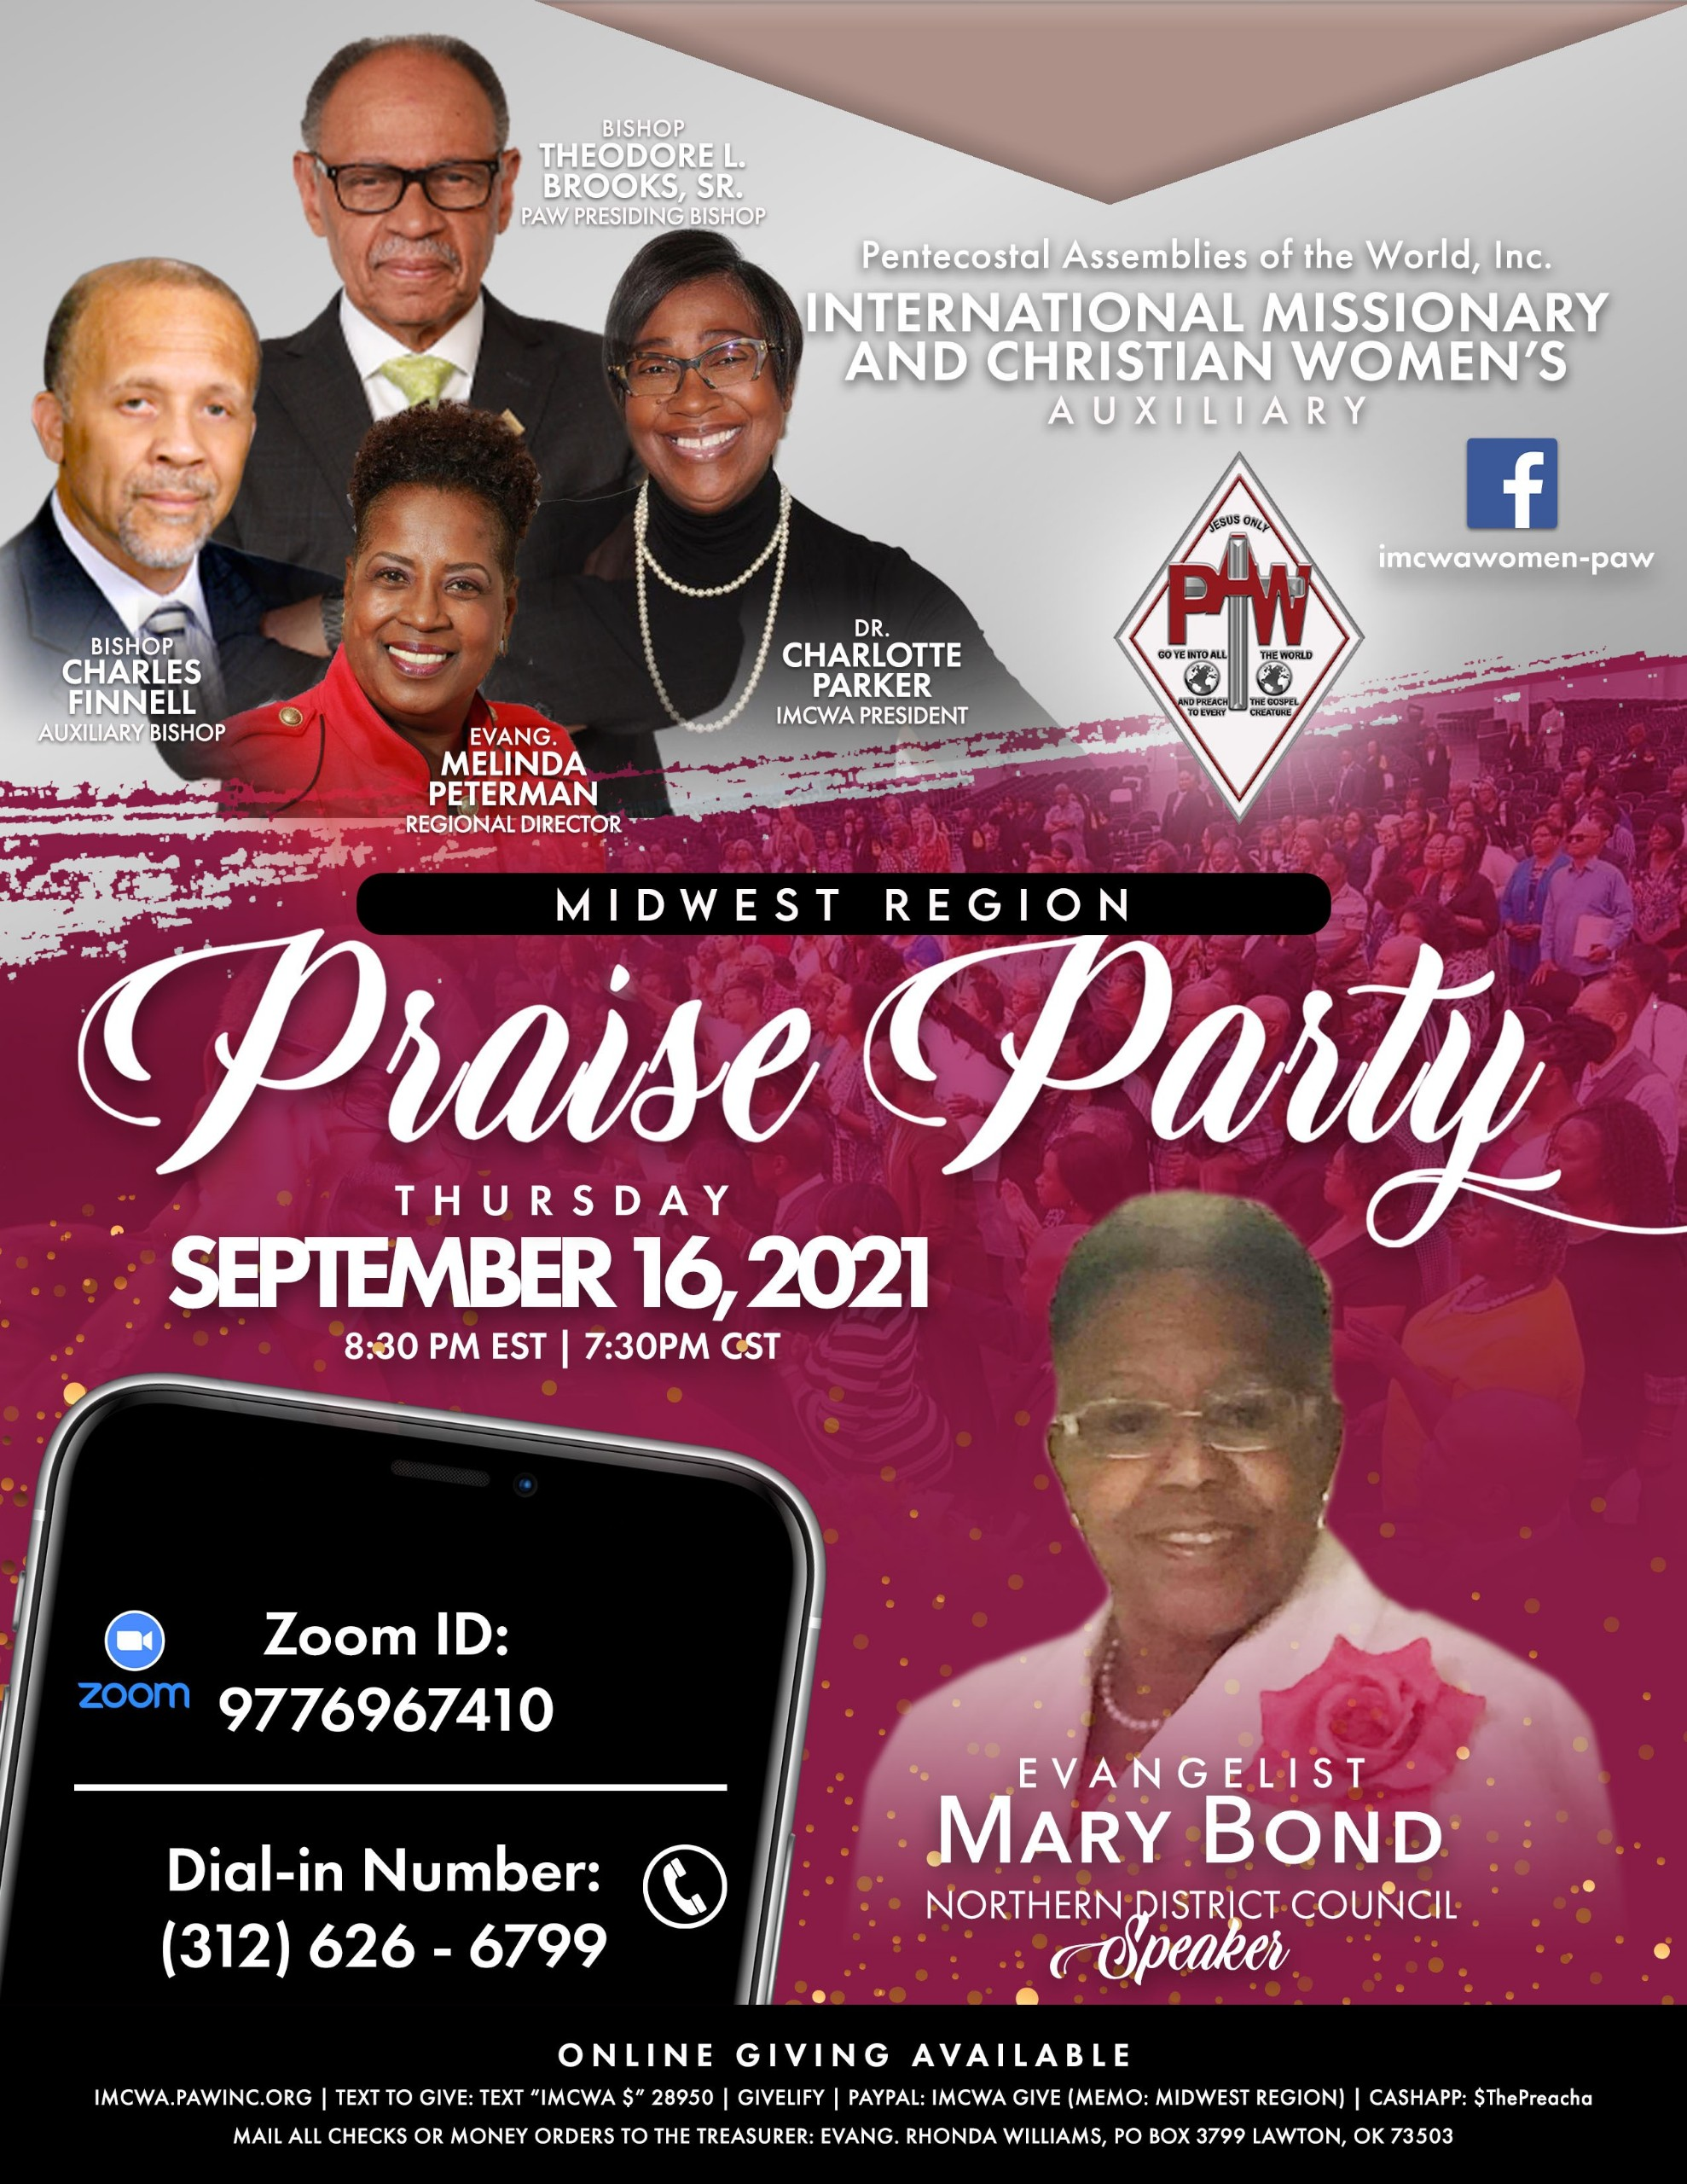 Midwest Praise Party Flyer 09-16-2021